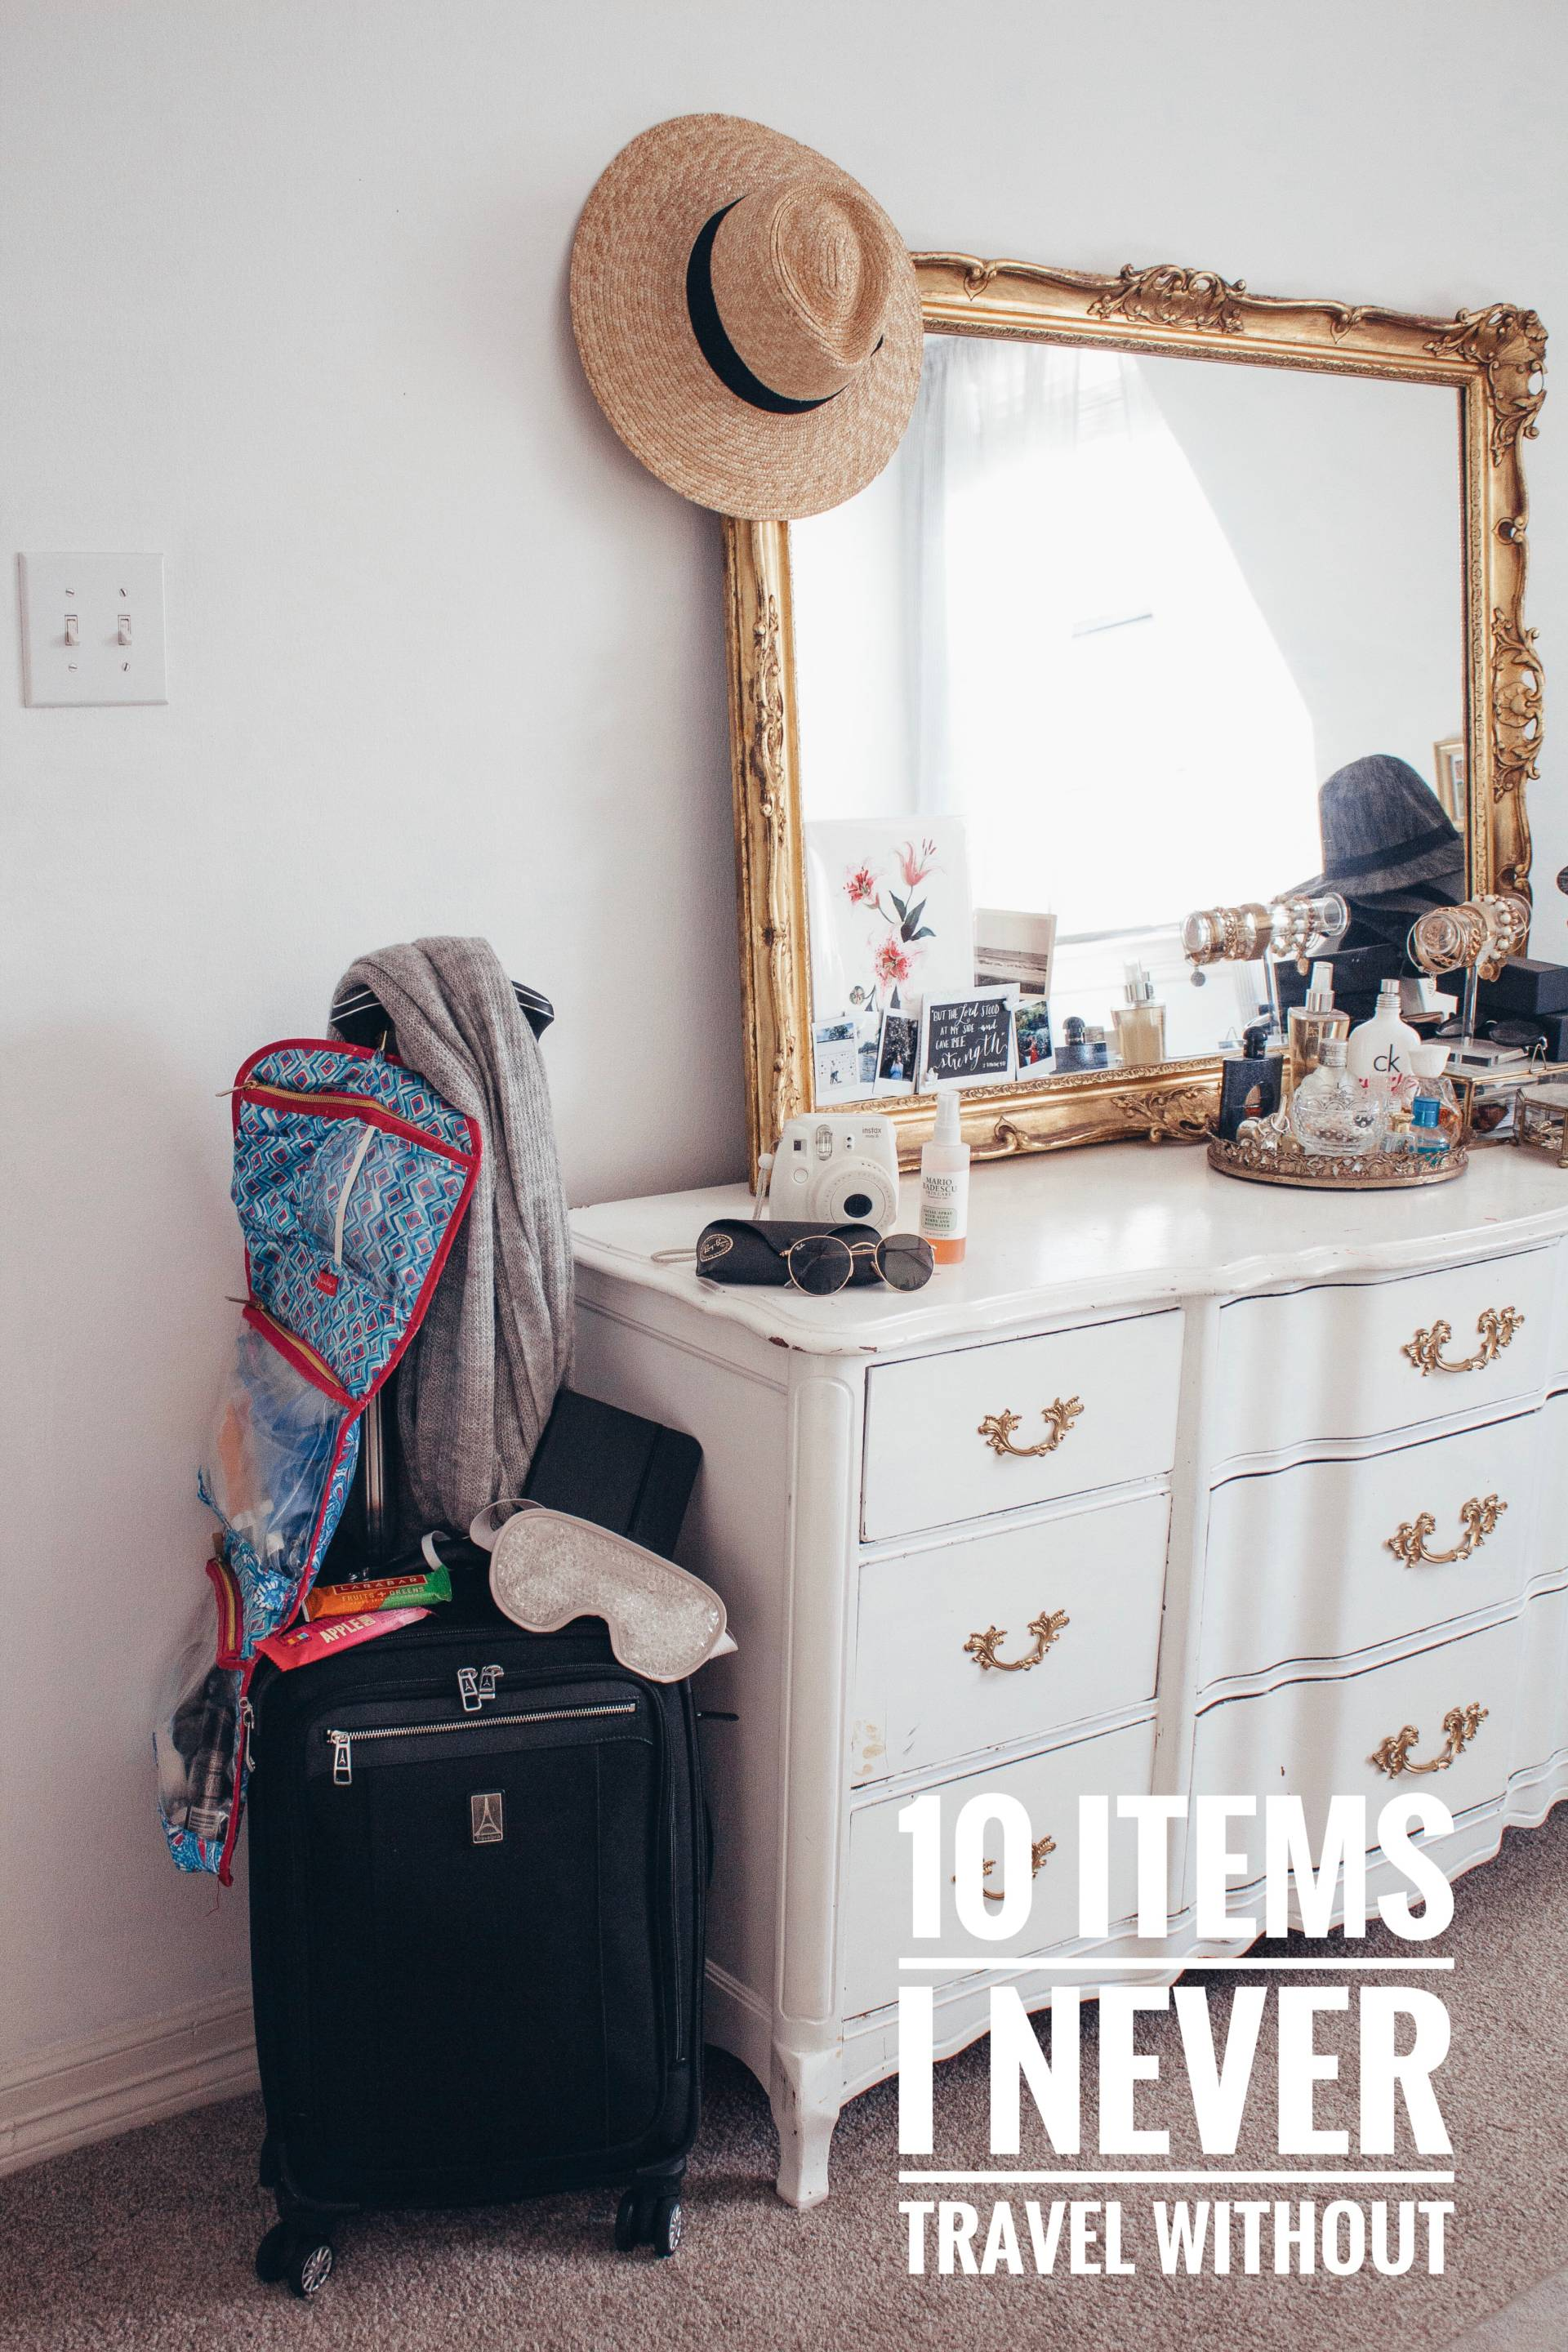 10 Items I Never Travel Without - That Would Make Great Gifts!